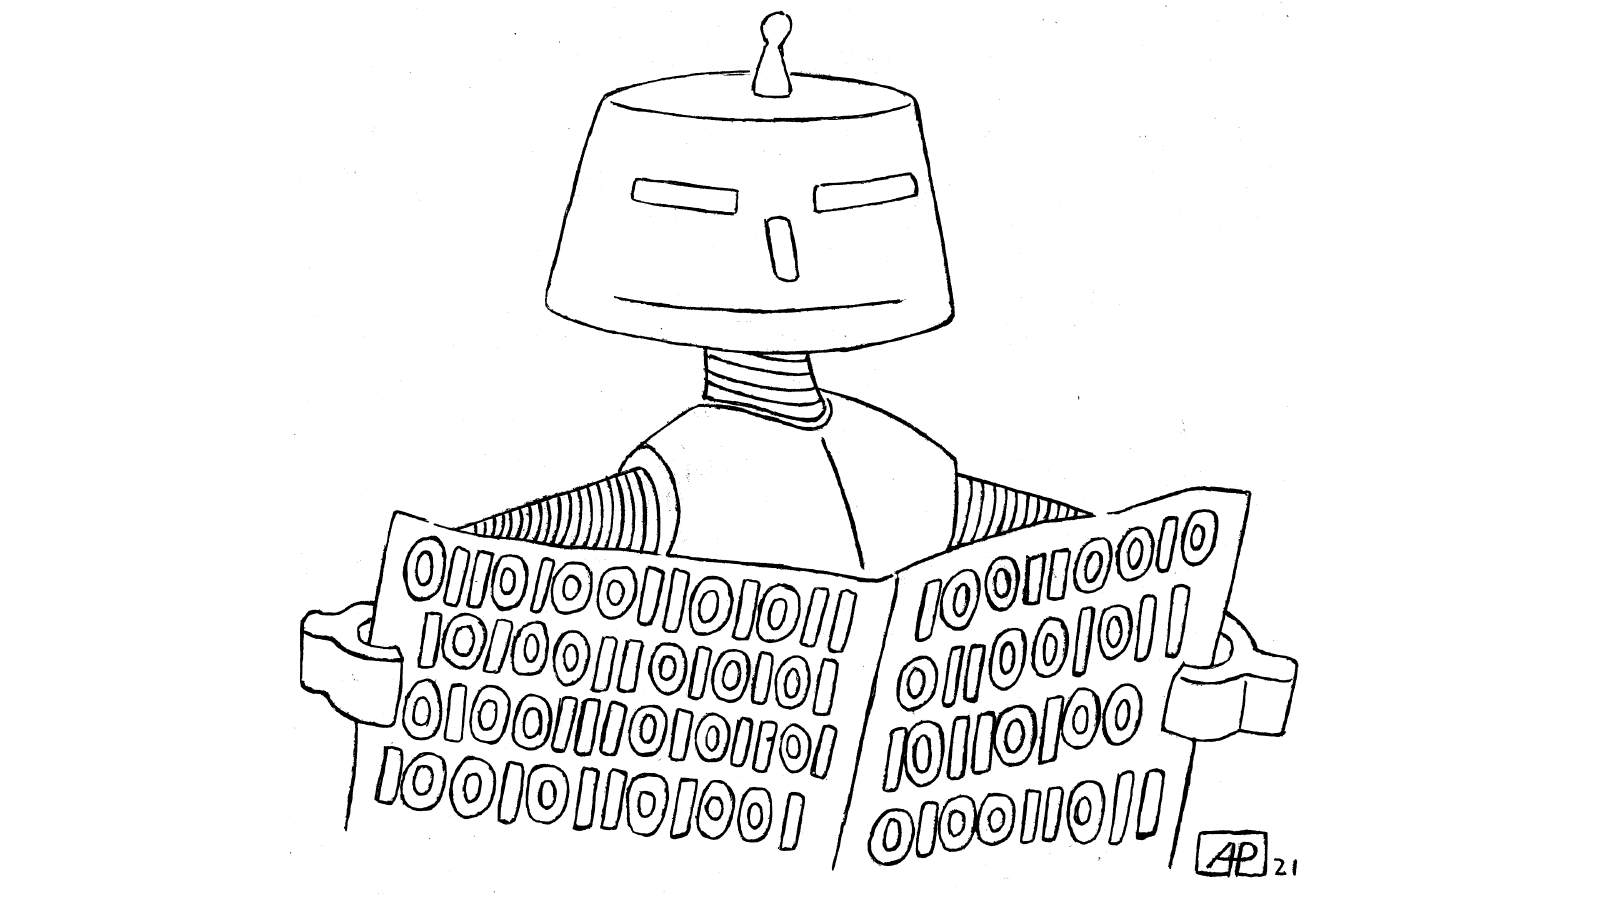 Cartoon with robot reading the newspaper.